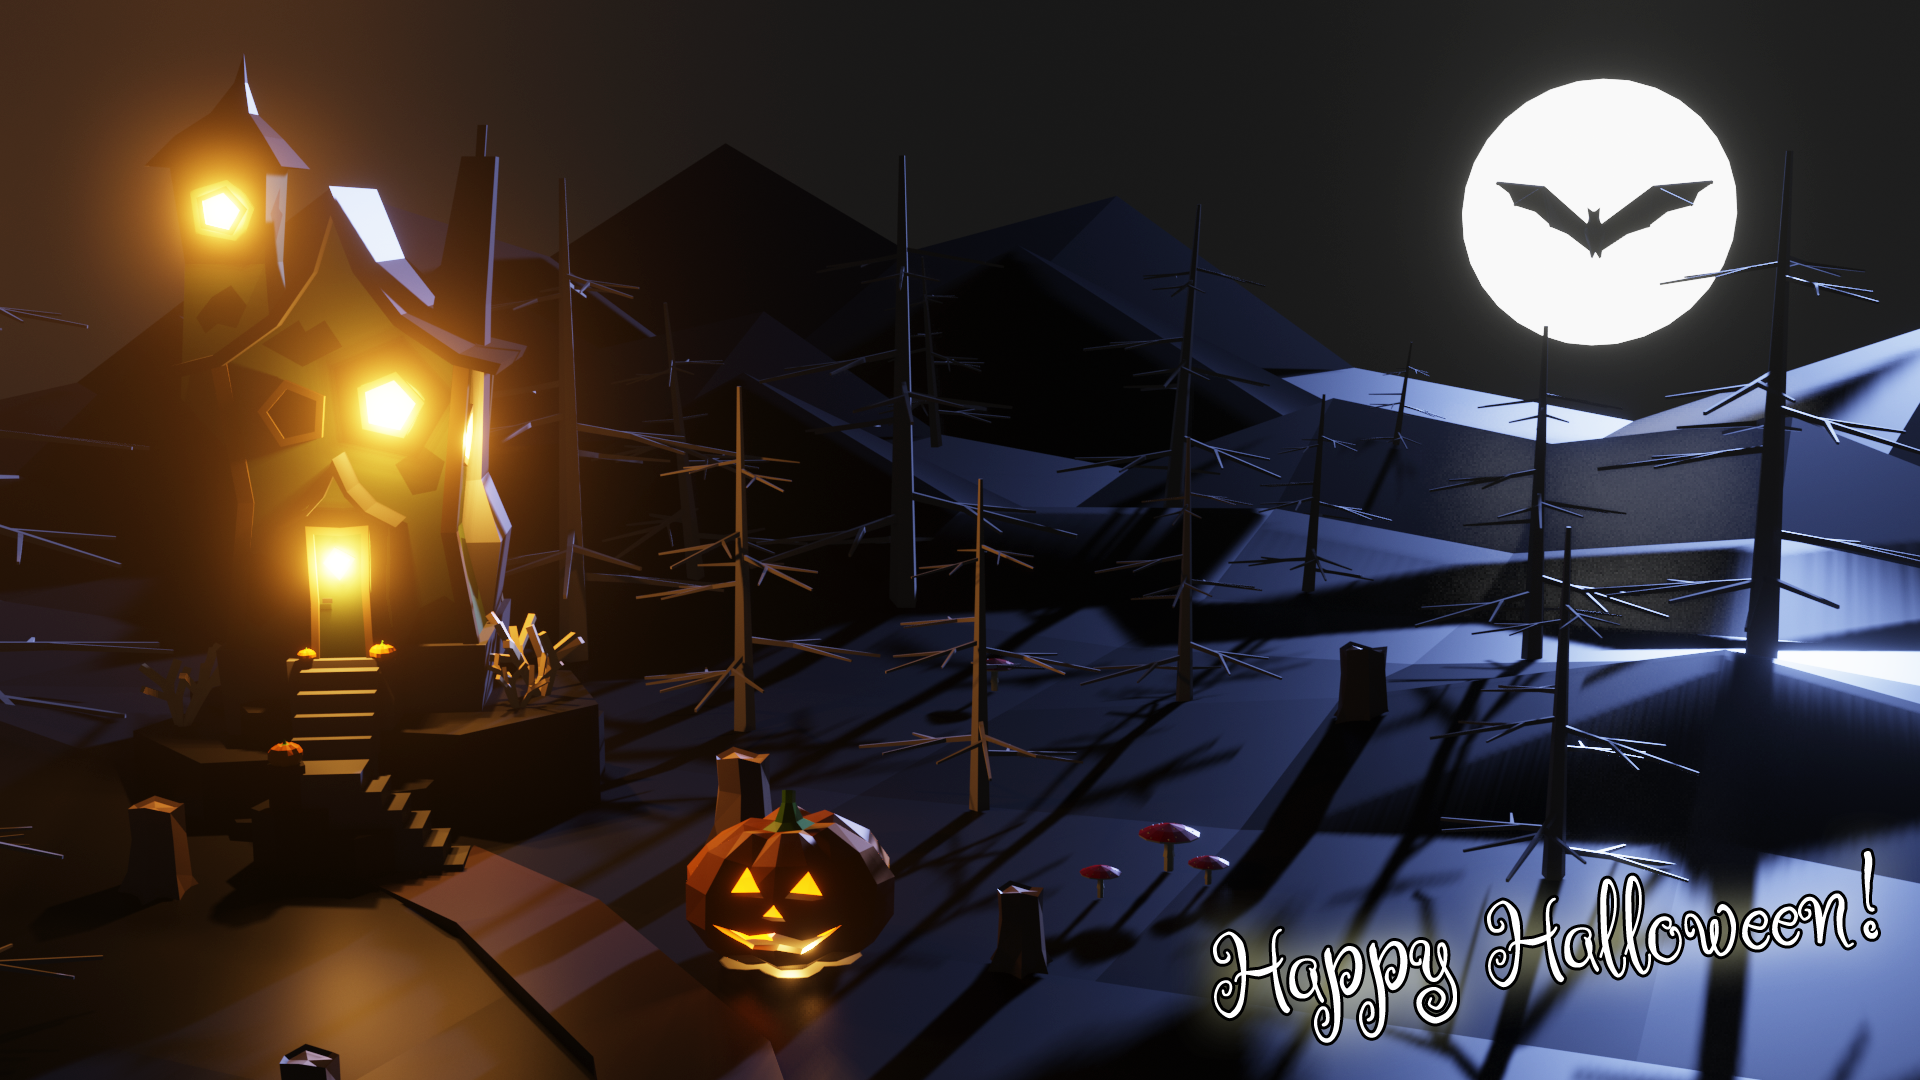 An image of a low poly Halloween scene with a haunted house, dead trees, and a pumpkin.